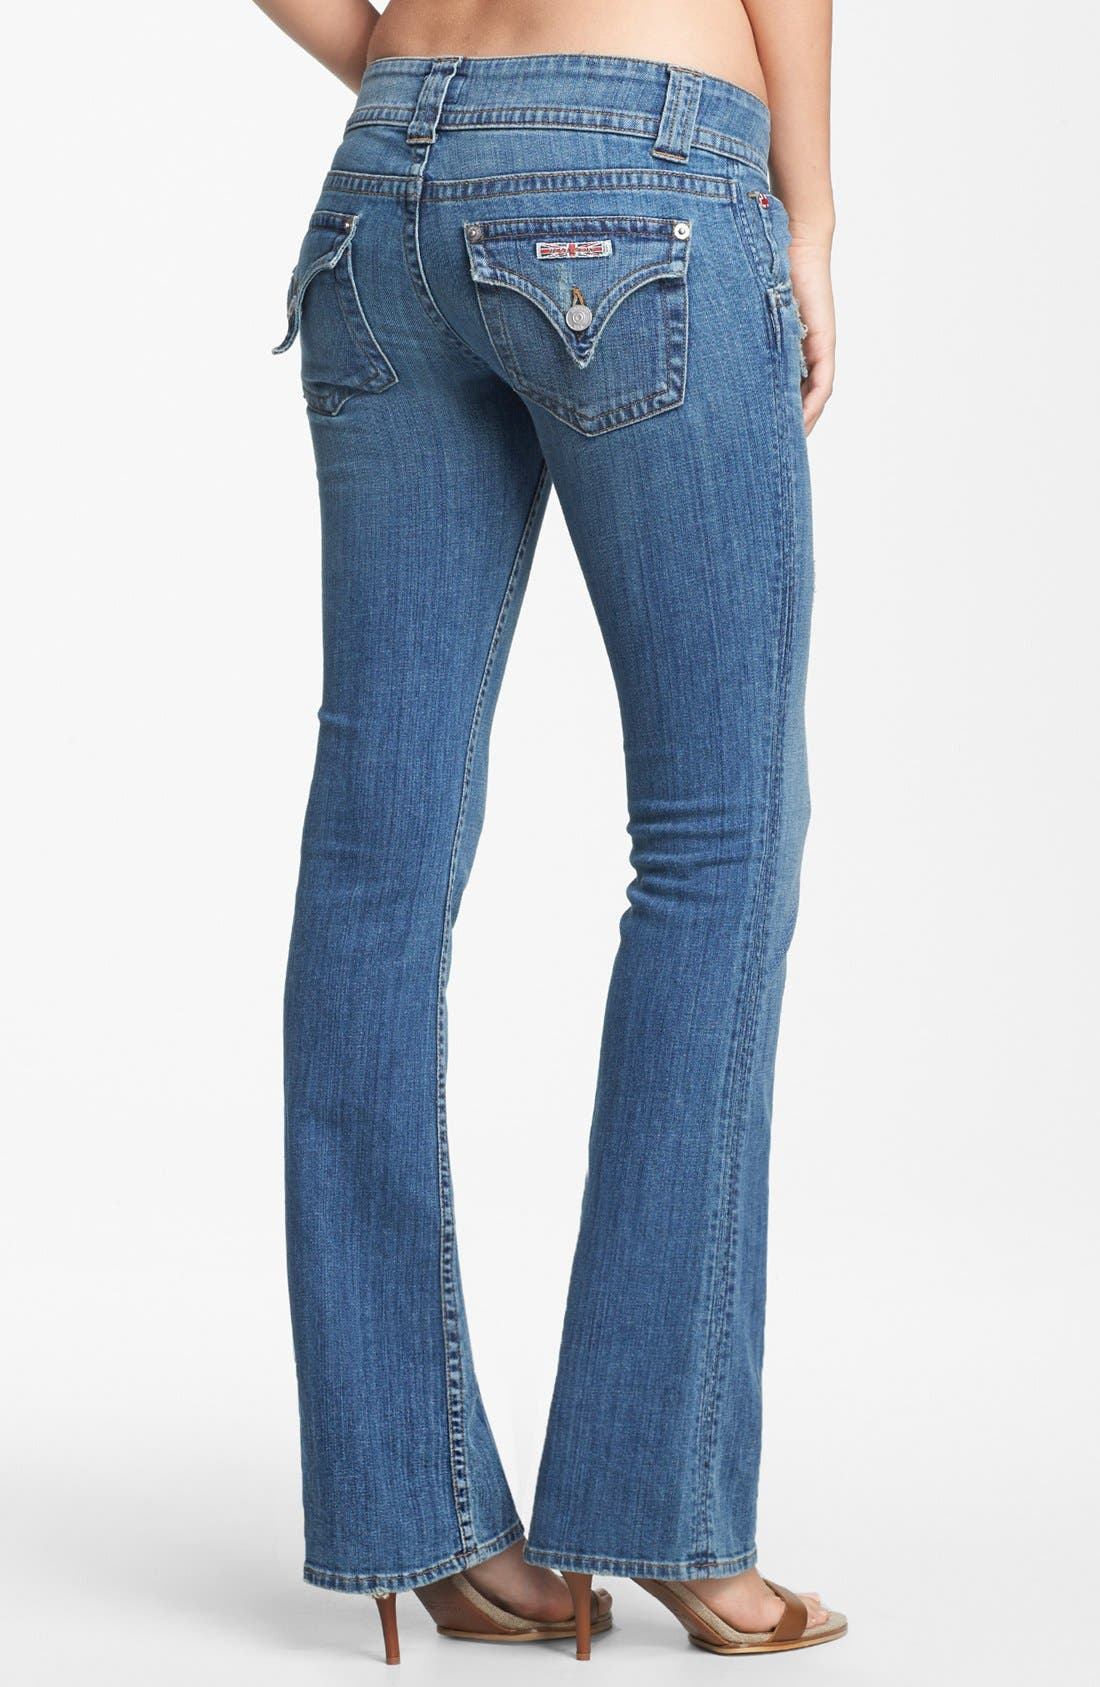 Alternate Image 2  - Hudson Jeans Triangle Pocket Bootcut Stretch Jeans (Vintage Napoli) (Petite)